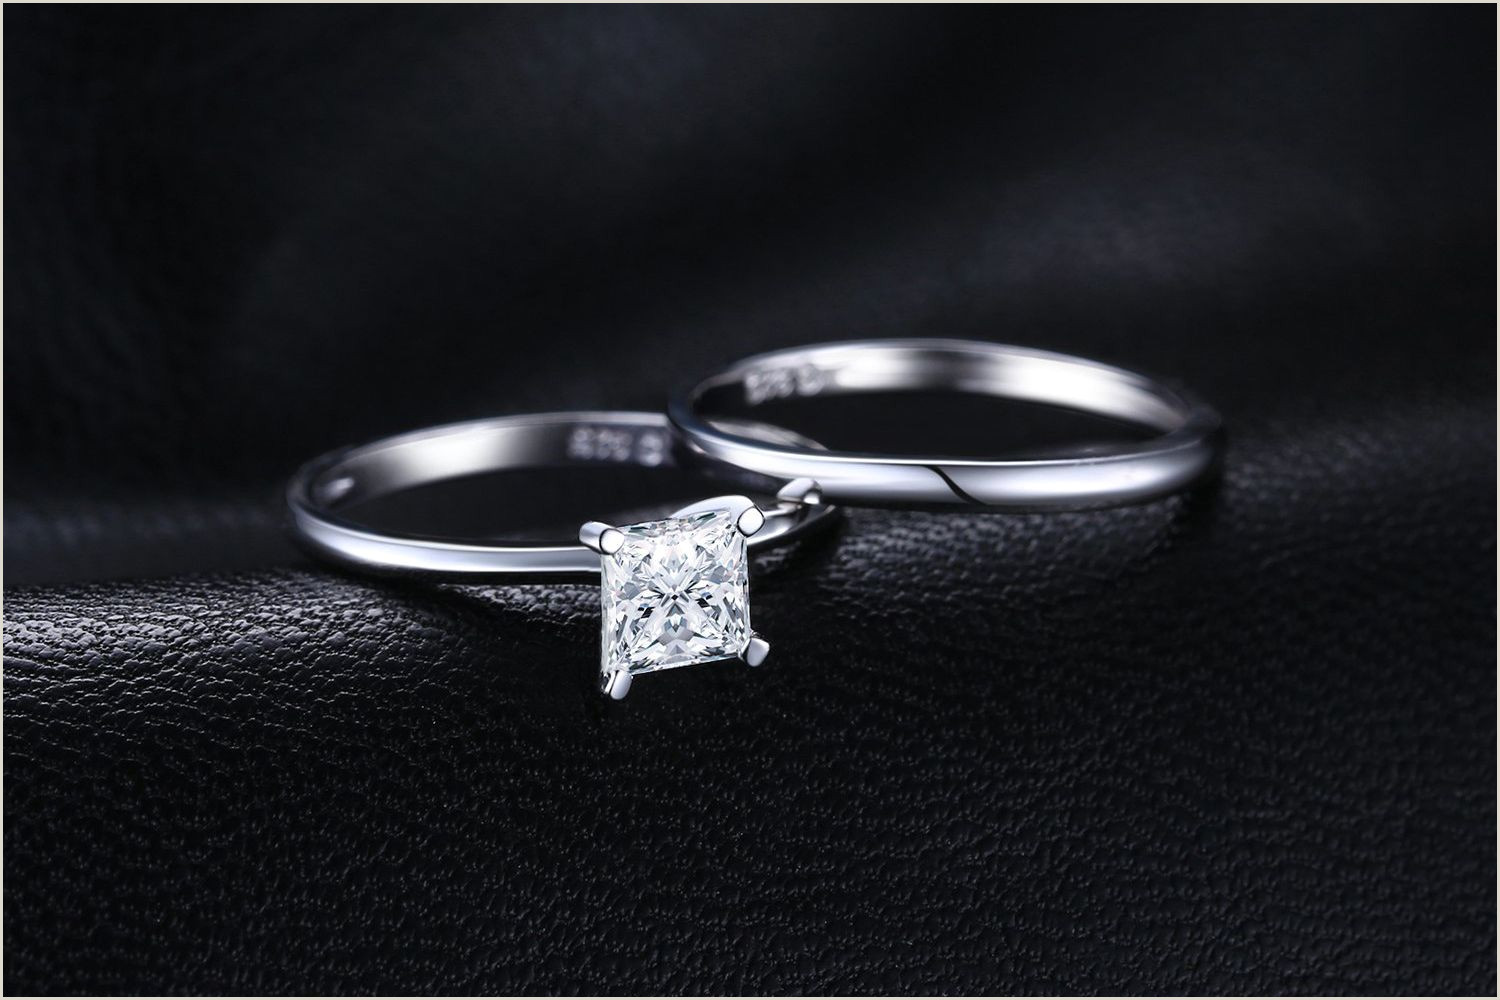 Marquise Cut Diamond Size Chart the 6 Best Fake Engagement Rings for Travel In 2019